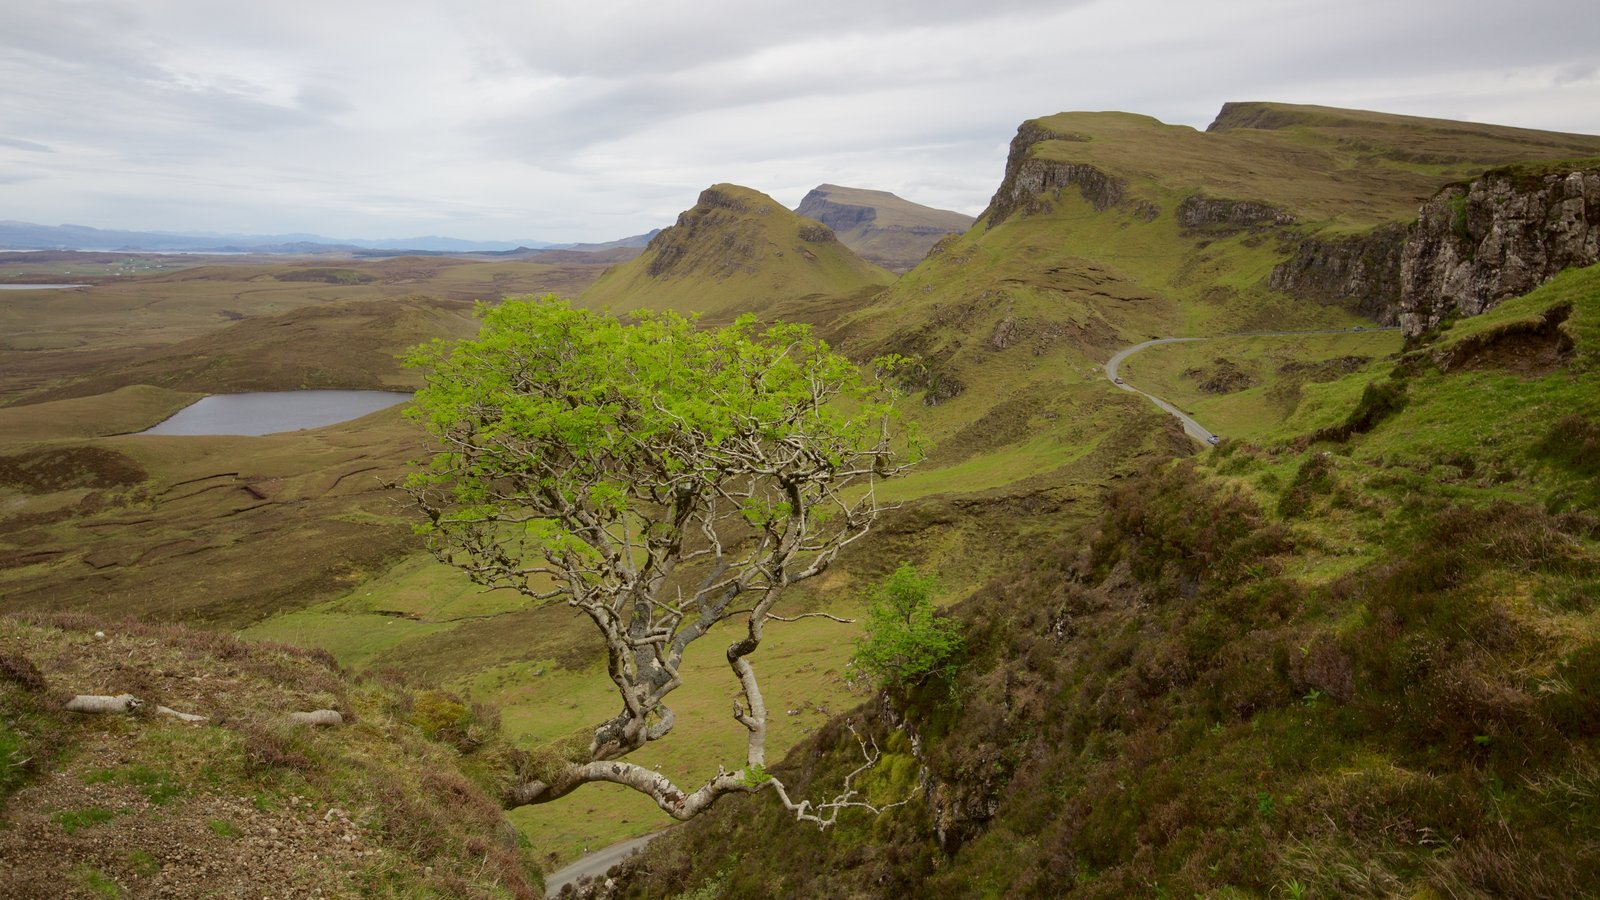 Quiraing which includes mountains and tranquil scenes